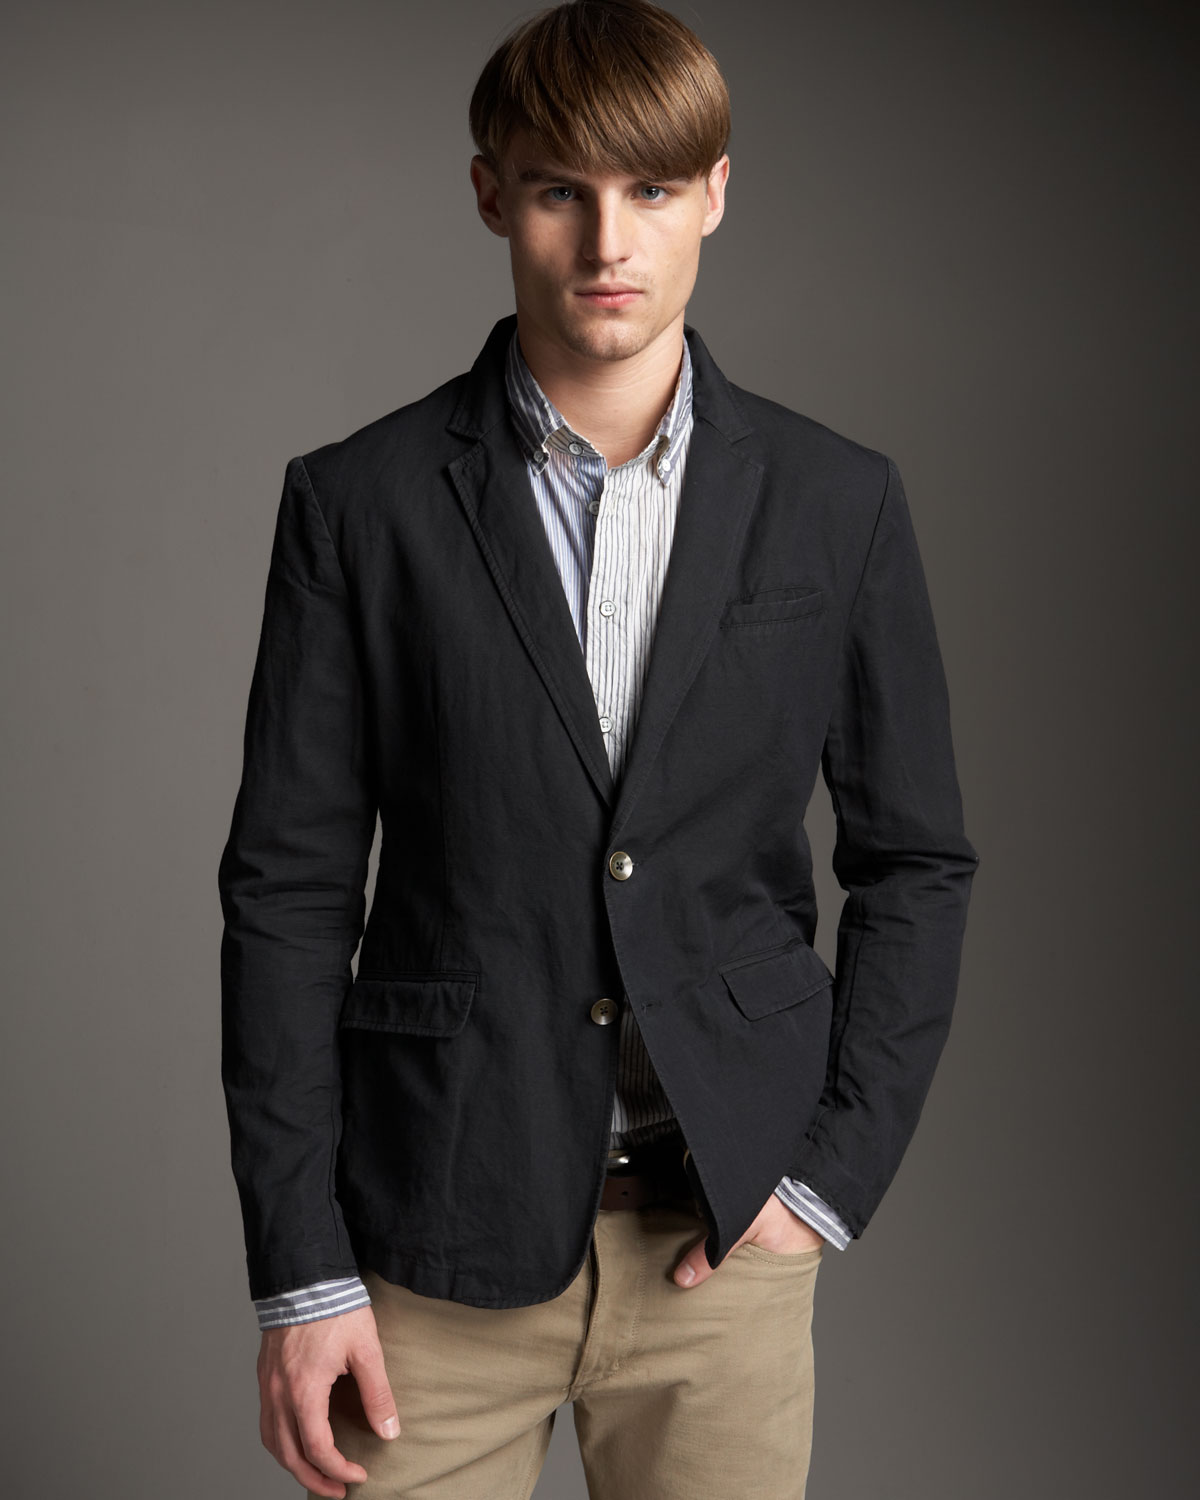 Men's Coats & Jackets Sale. Upgrade your outerwear with our stylish selection of men's sale coats and jackets. black talus pocket hooded jacket Low Stock. denim workwear jacket £ Modern details like buttoned back pockets give this traditional style a contemporary update. Cotton-blend waxed jacket Button fastenings Epaulettes Front.